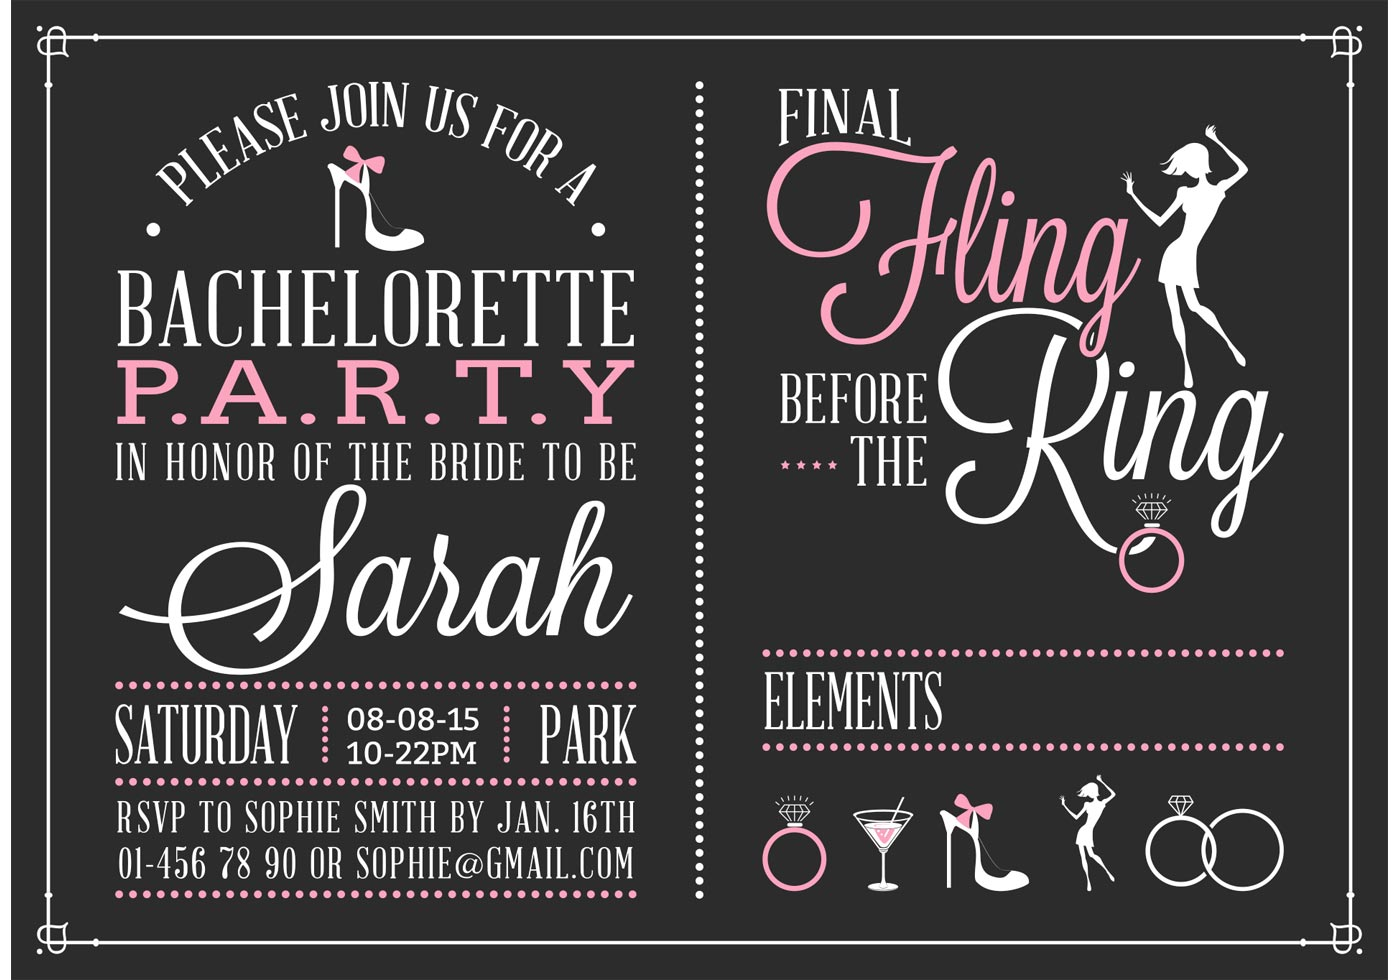 Bachelorette Party Invitation Template Free